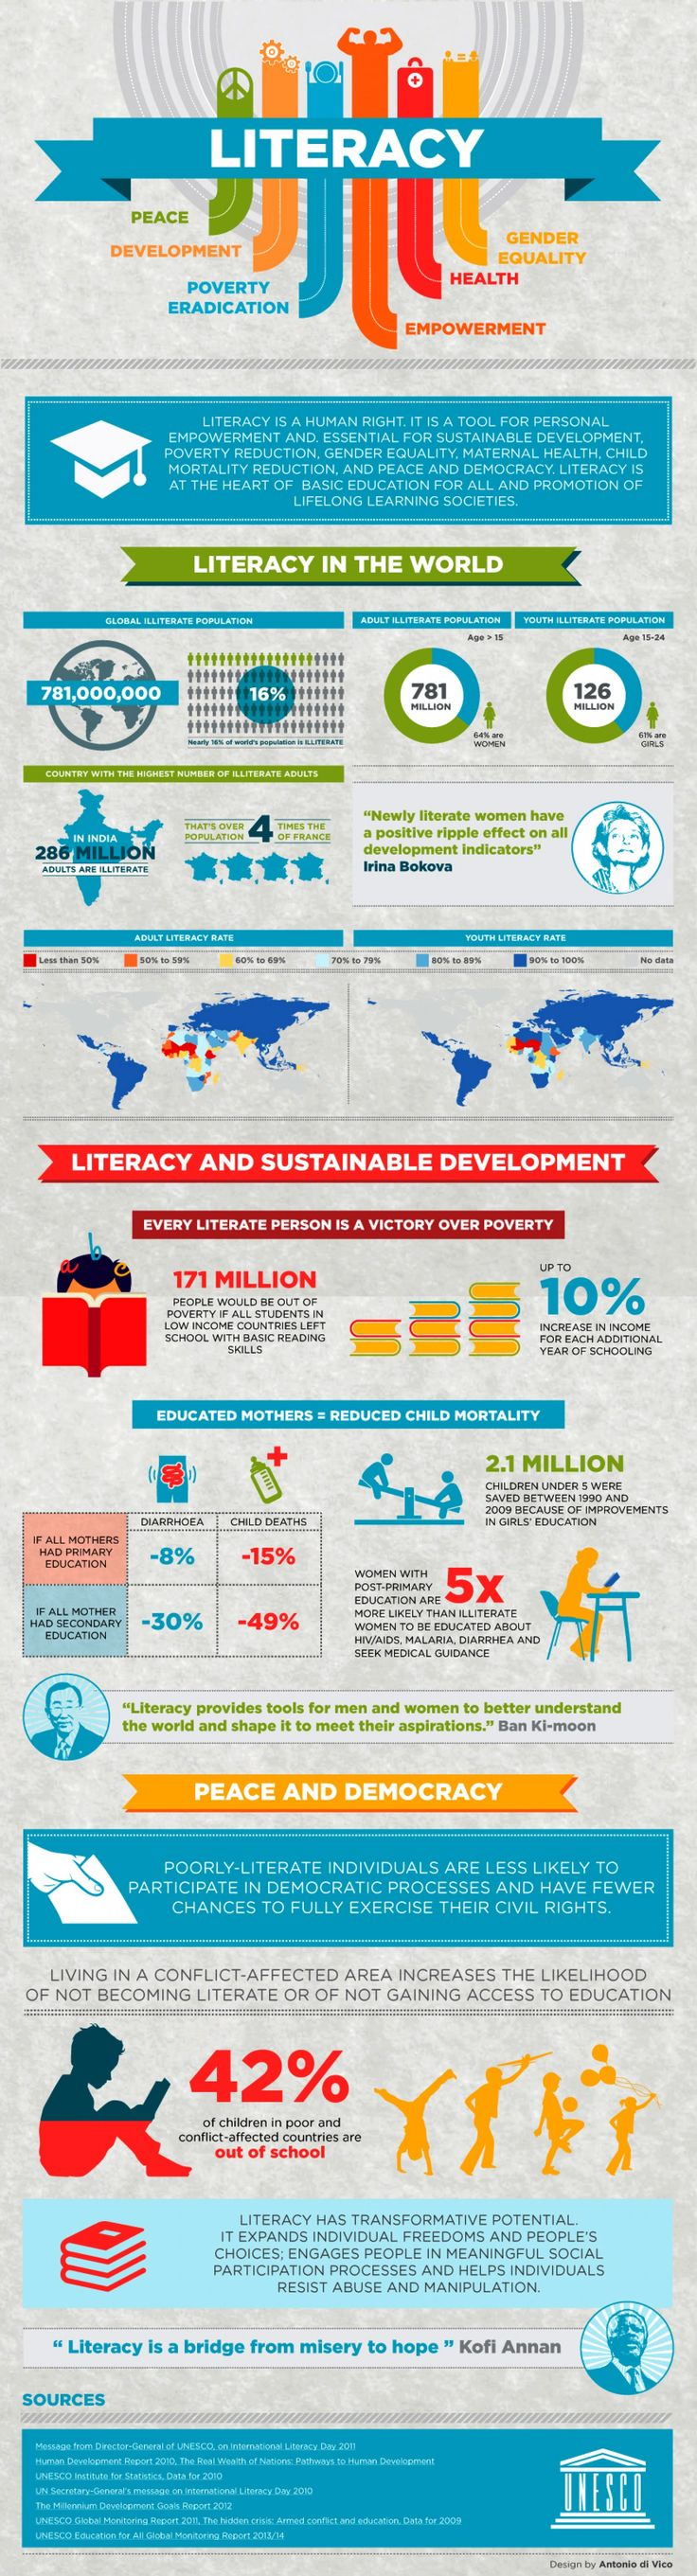 45 best infographics images on pinterest english grammar english literacy for sustainable development infographic fandeluxe Gallery